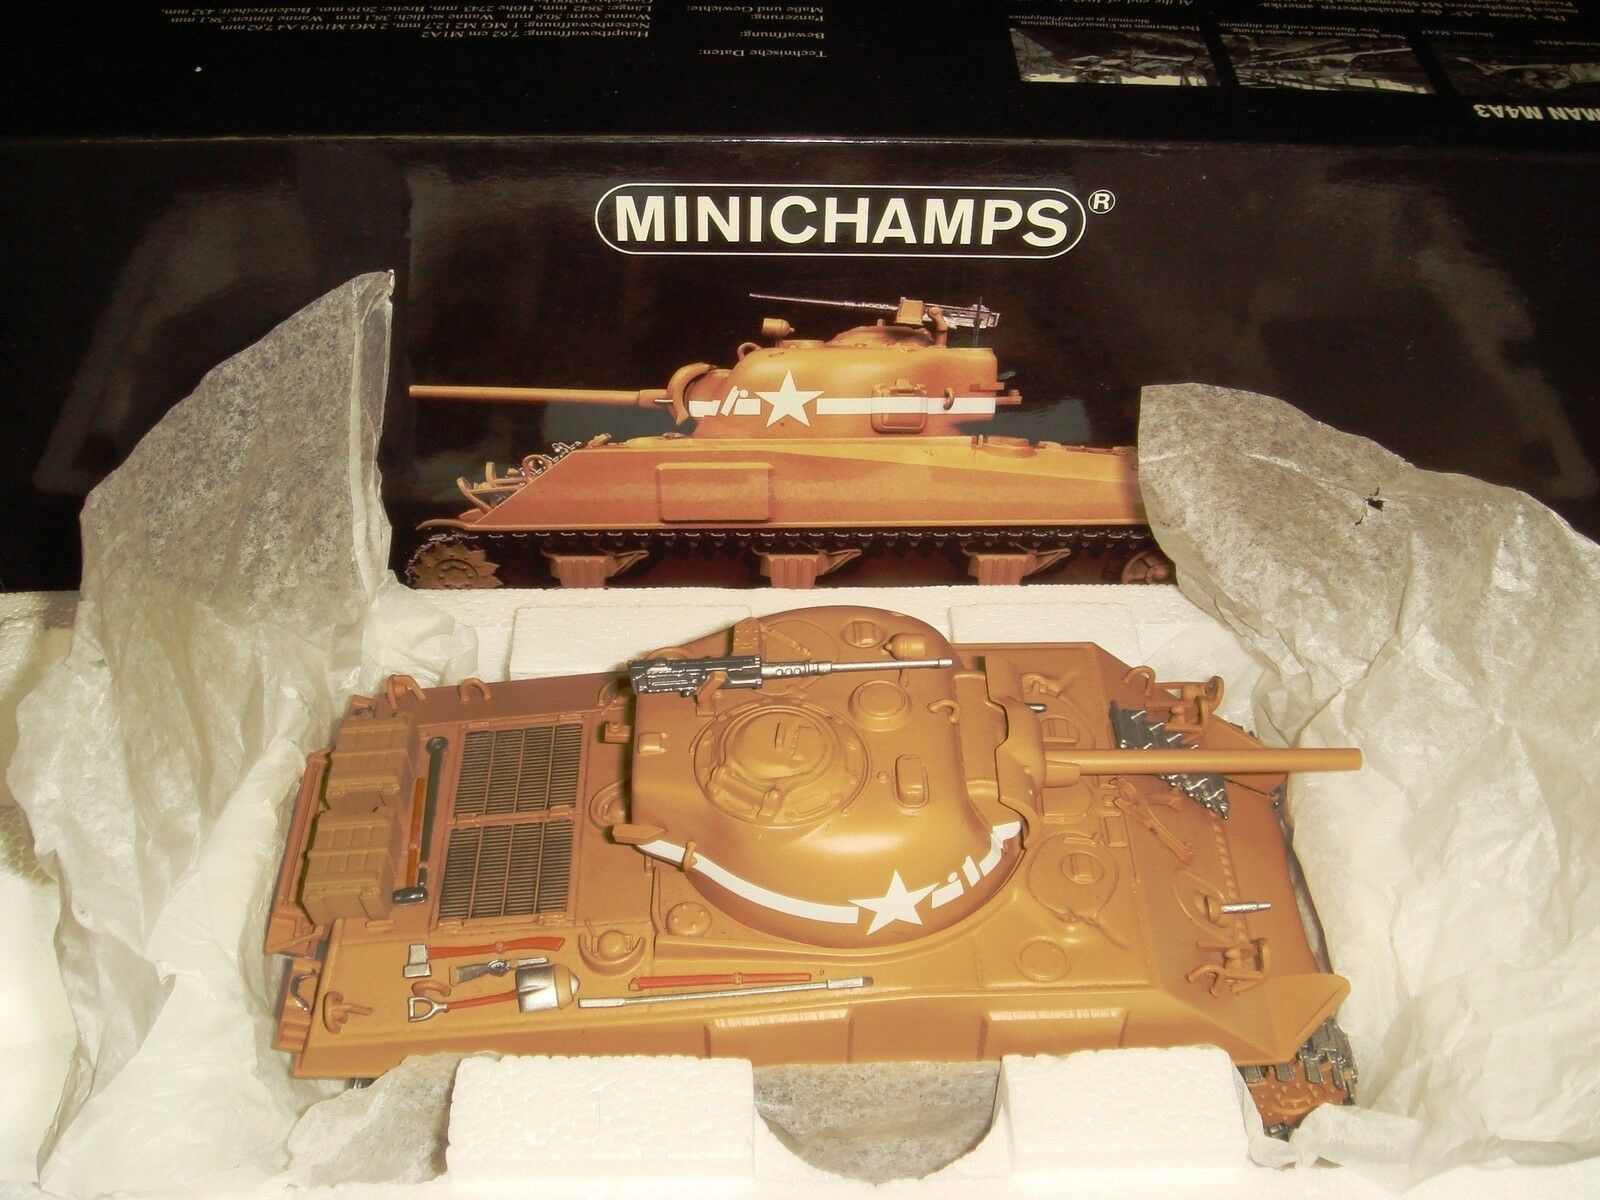 Minichamps 1 35 M4A3 Sherman tank 1st US Armored Division Tunisia 1943 Retired